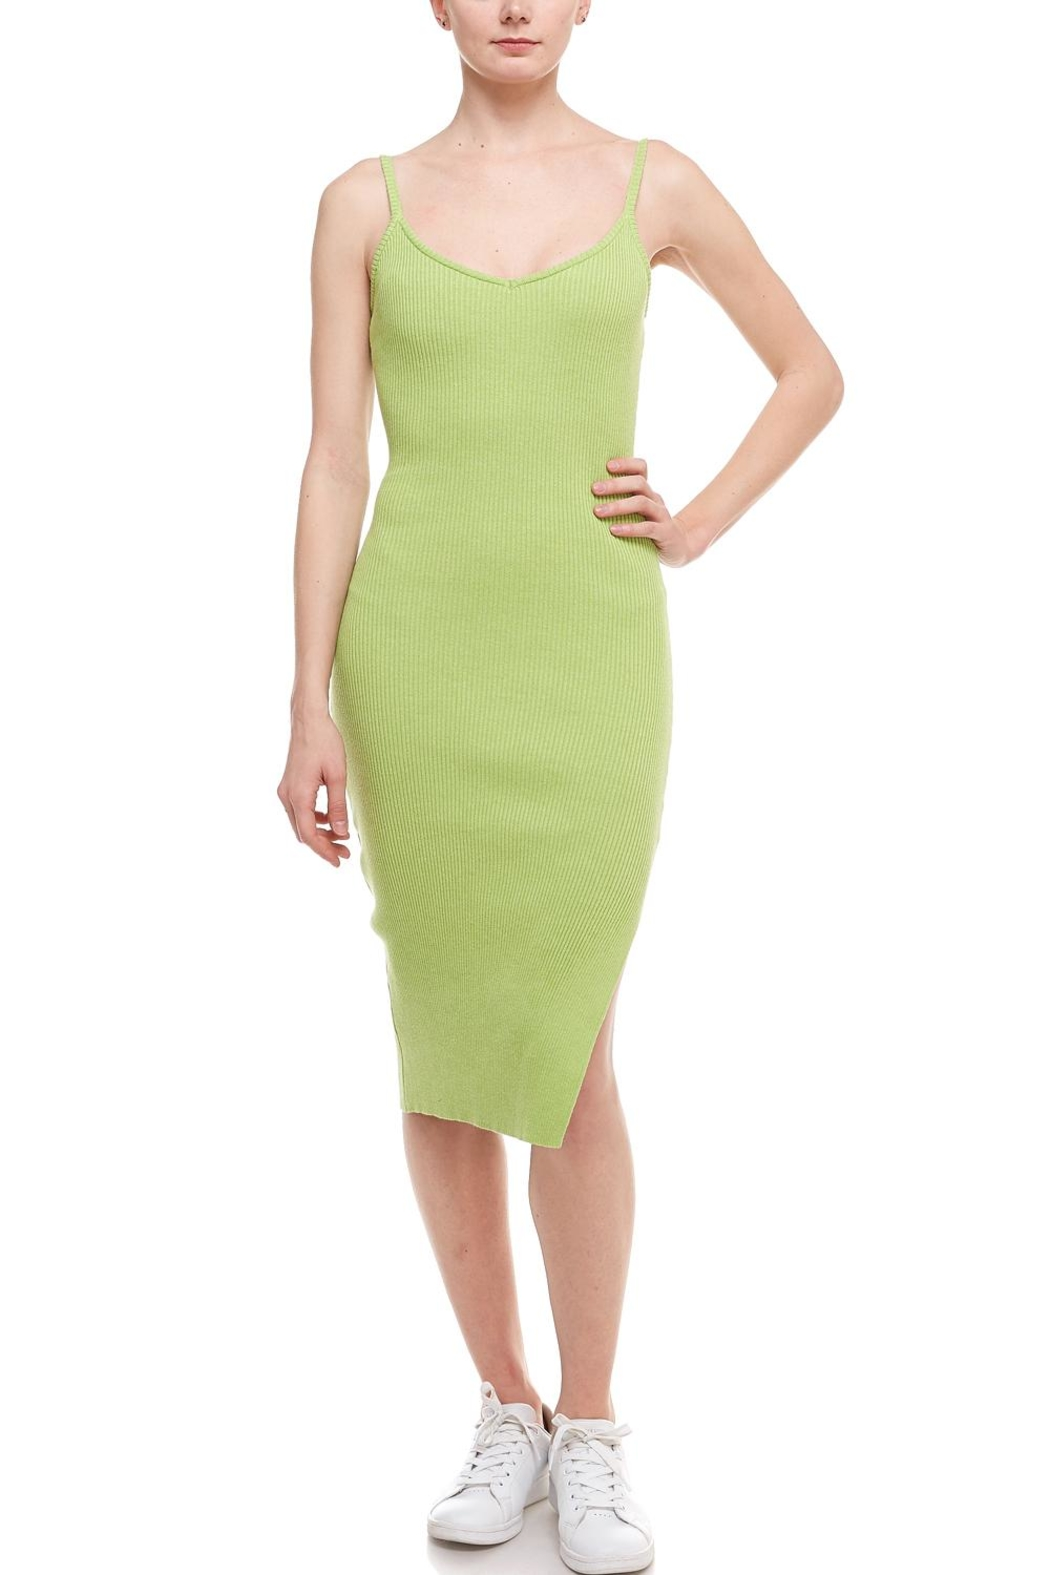 33439ff88dc412 Emory Park Sleeveless Knit Dress from New York by Dor L Dor — Shoptiques